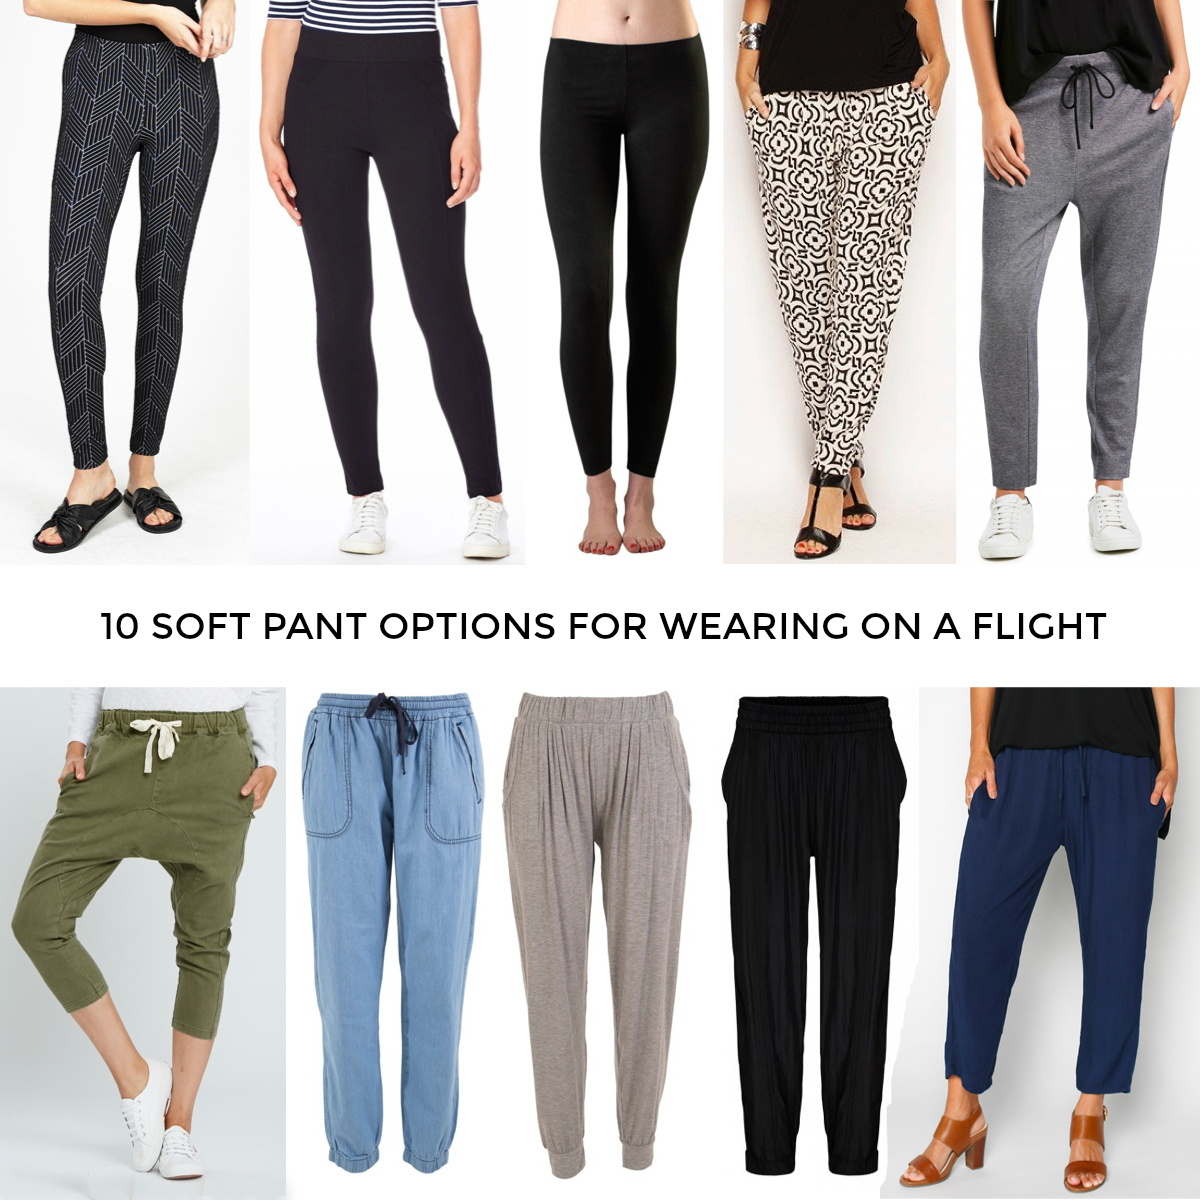 0 soft pant options for wearing on a flight when travelling overseas